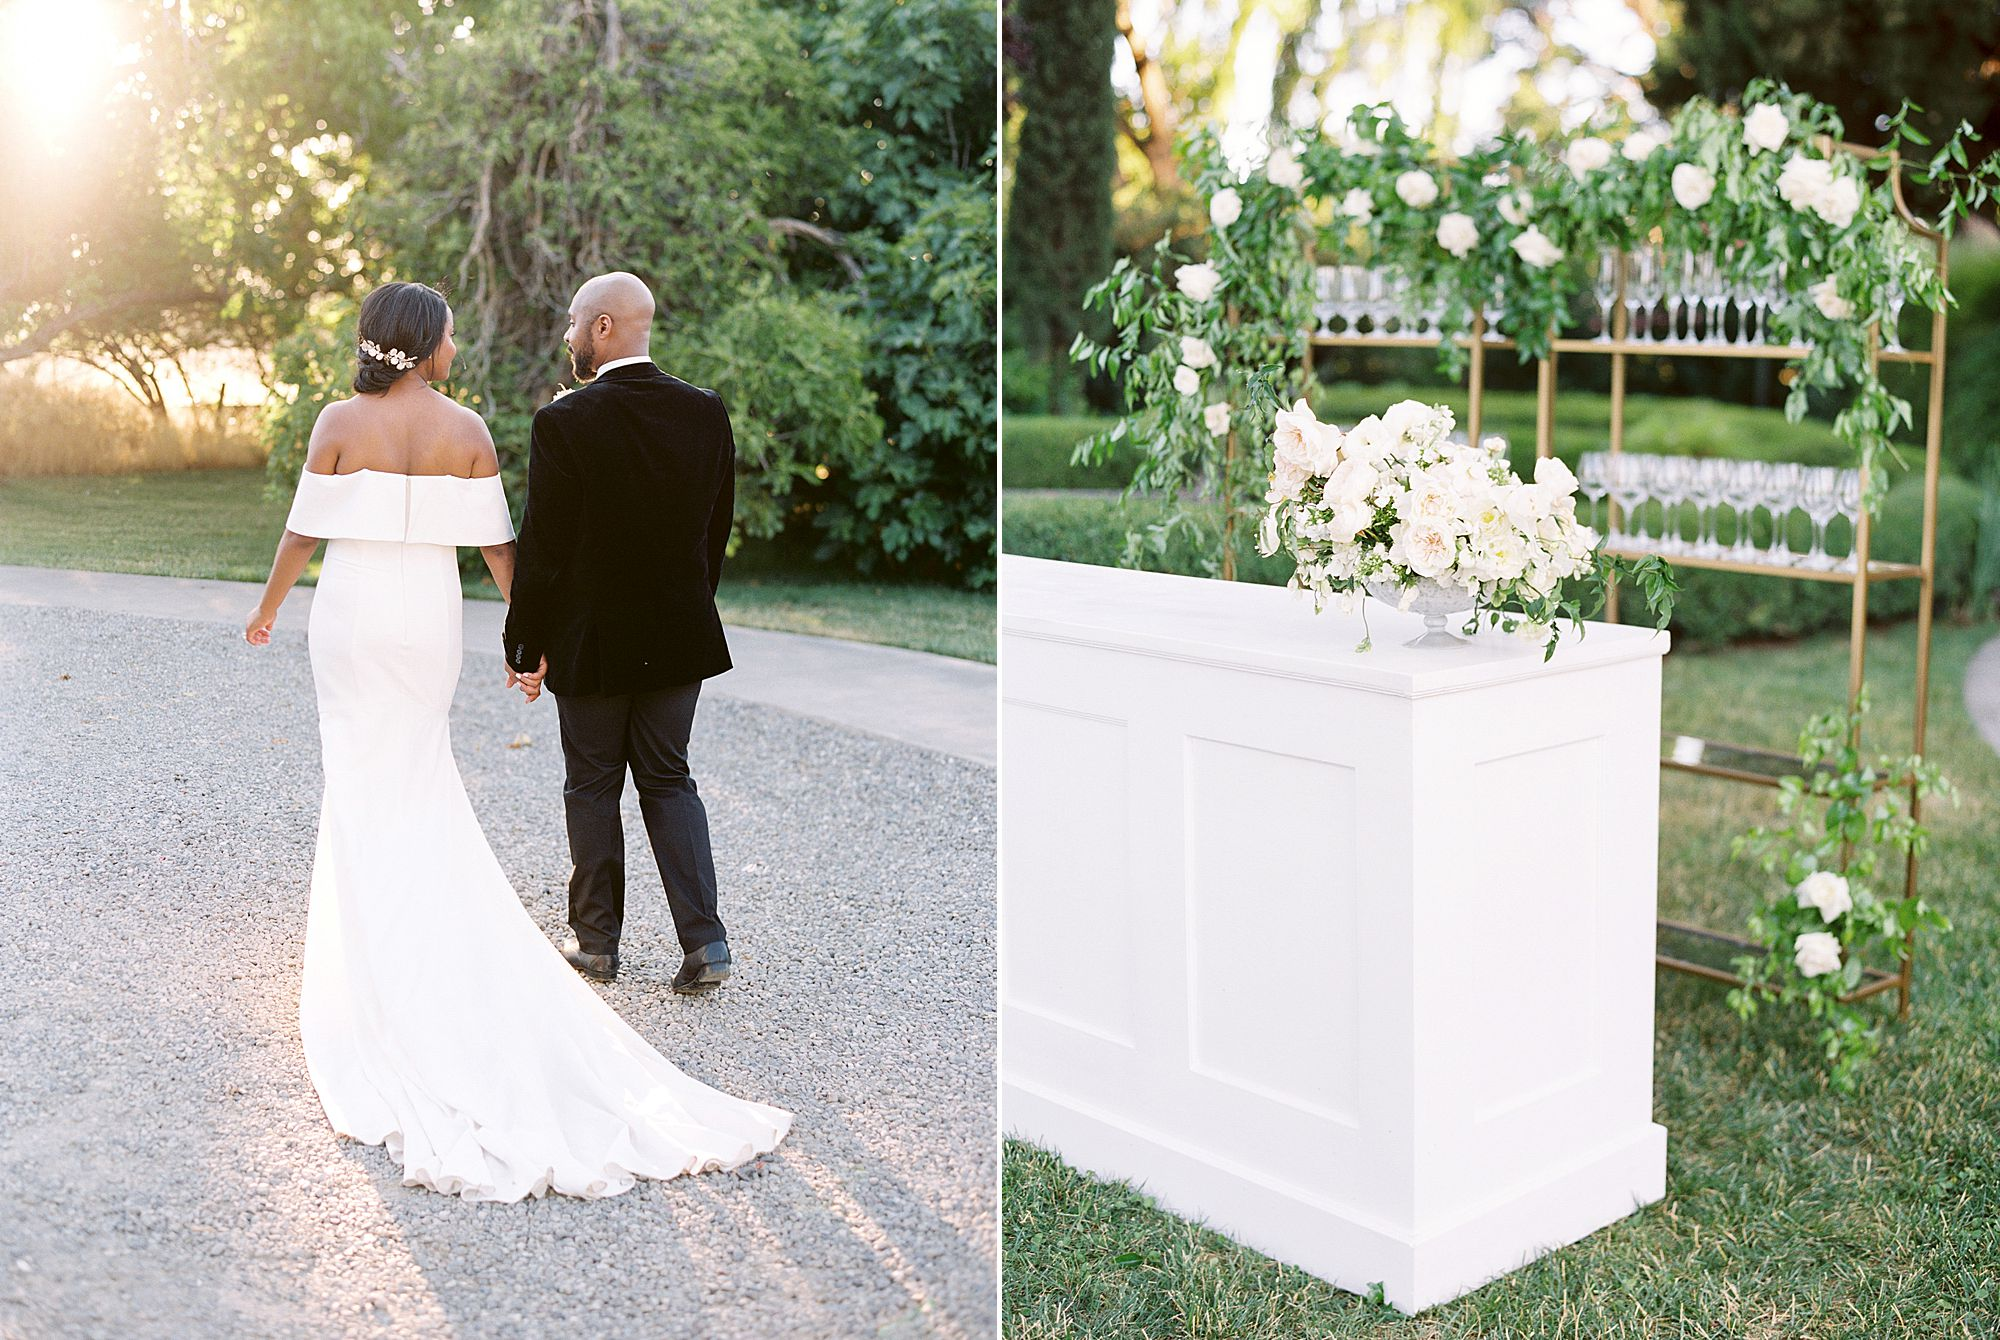 Park Winters Micro-Wedding Inspiration on Style Me Pretty - Stephanie Teague Events - Ashley Baumgartner - Park Winters Wedding - Black Tie Wedding - Micro-Wedding Sacramento Photographer_0027.jpg